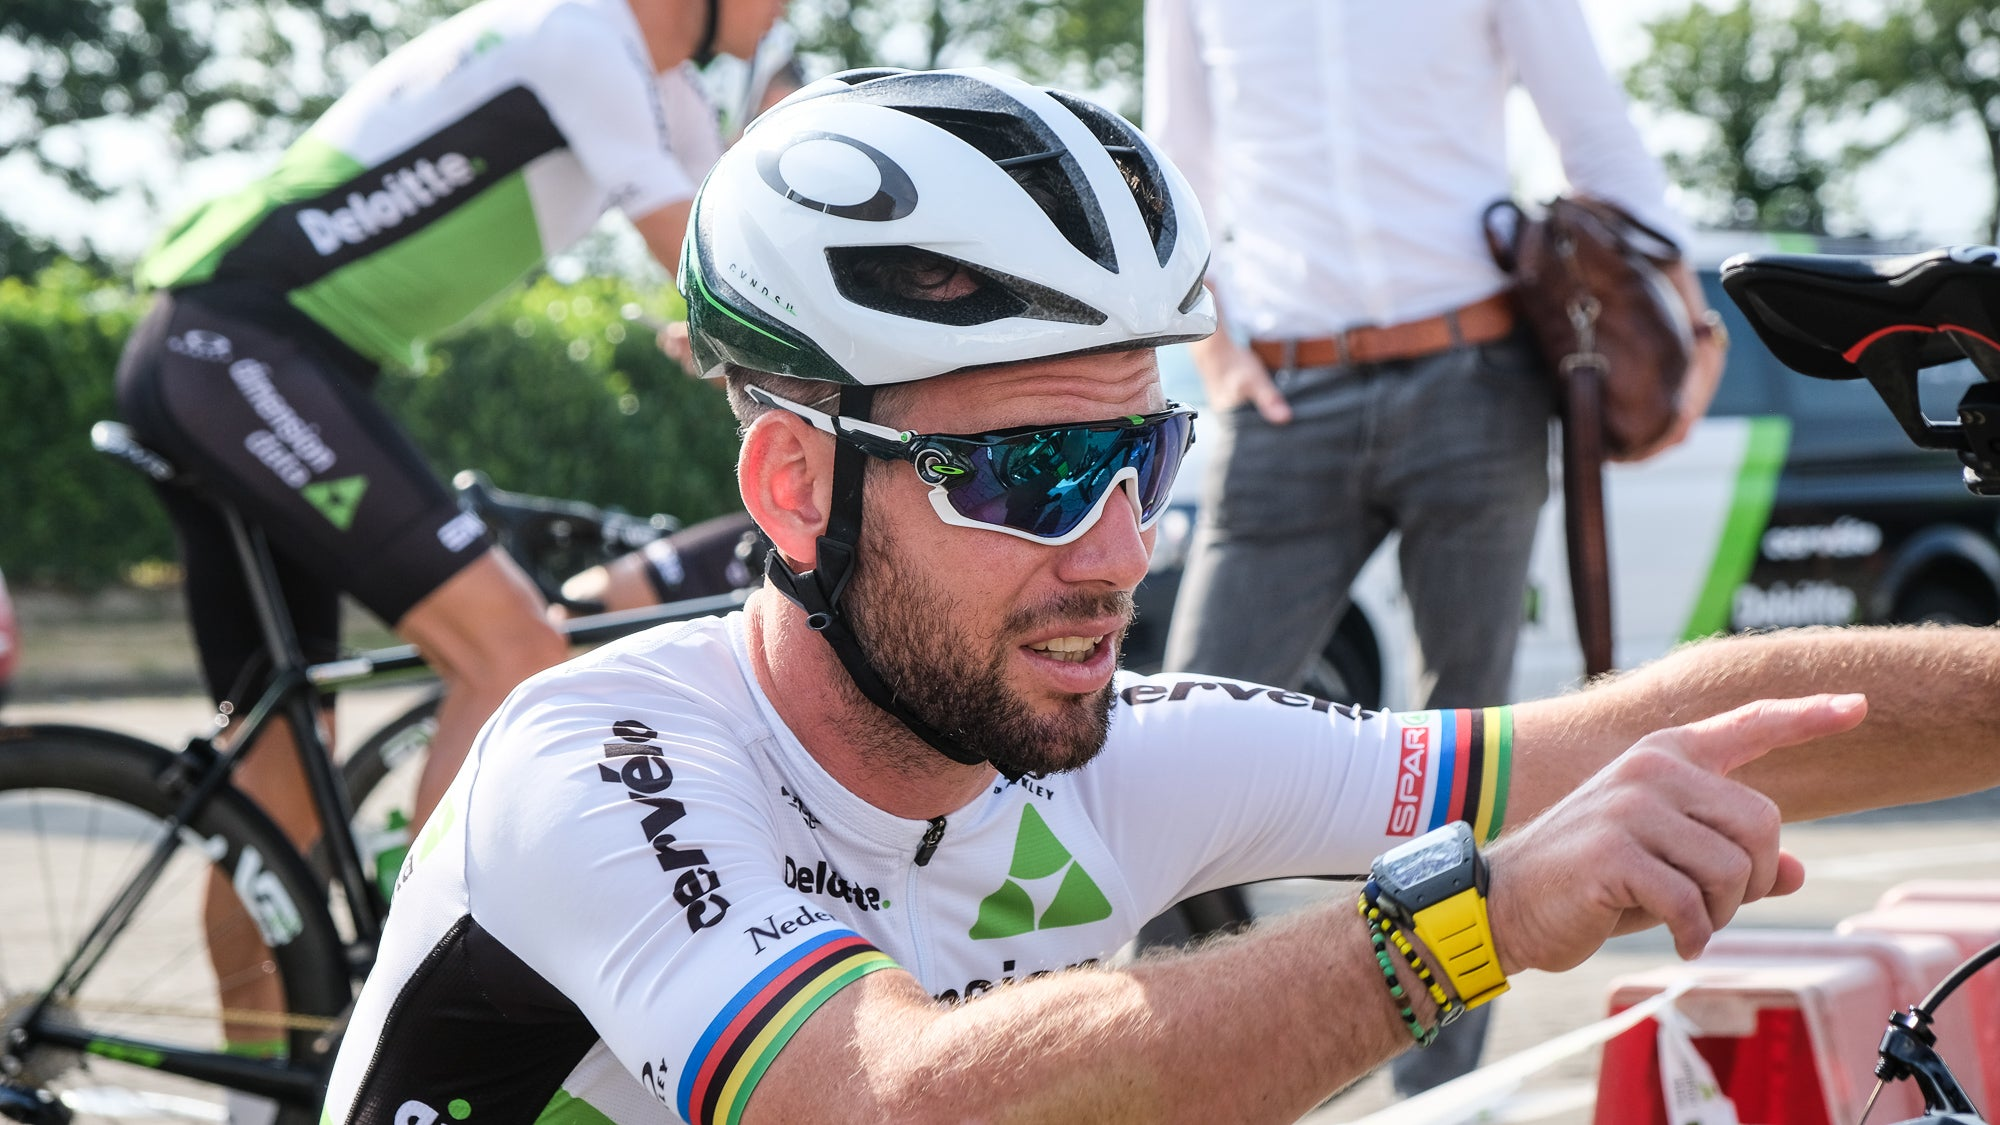 1ea5f72b2eb24b Is Cav s watch an indication he has aspirations for yellow  It might just  be a snazzy watch. But don t forget  Cav wore yellow at the 2016 Tour de  France ...